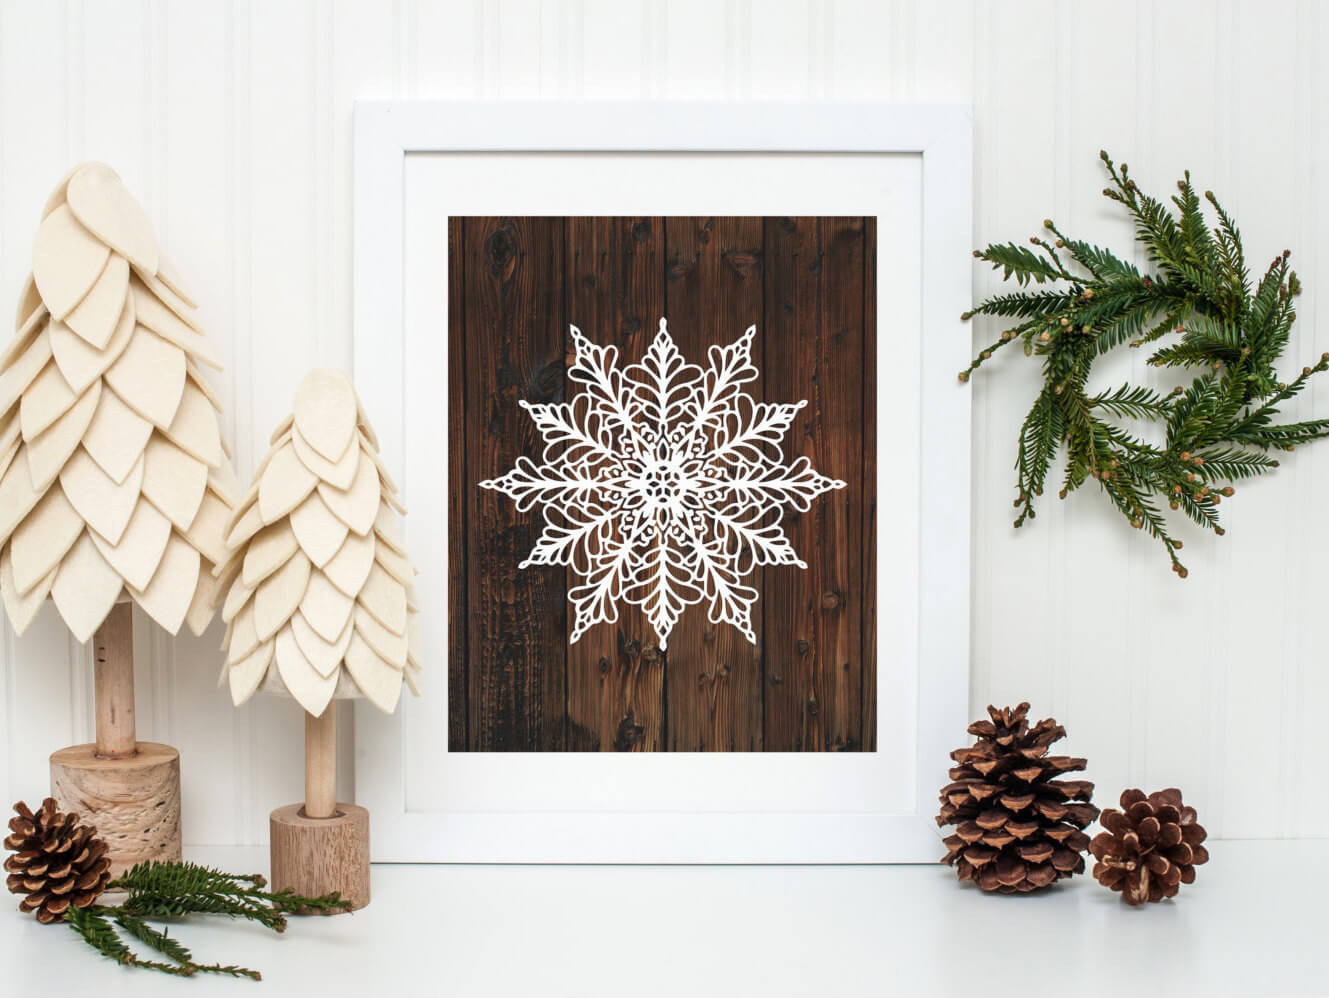 Textured Trees and Stenciled Snowflakes